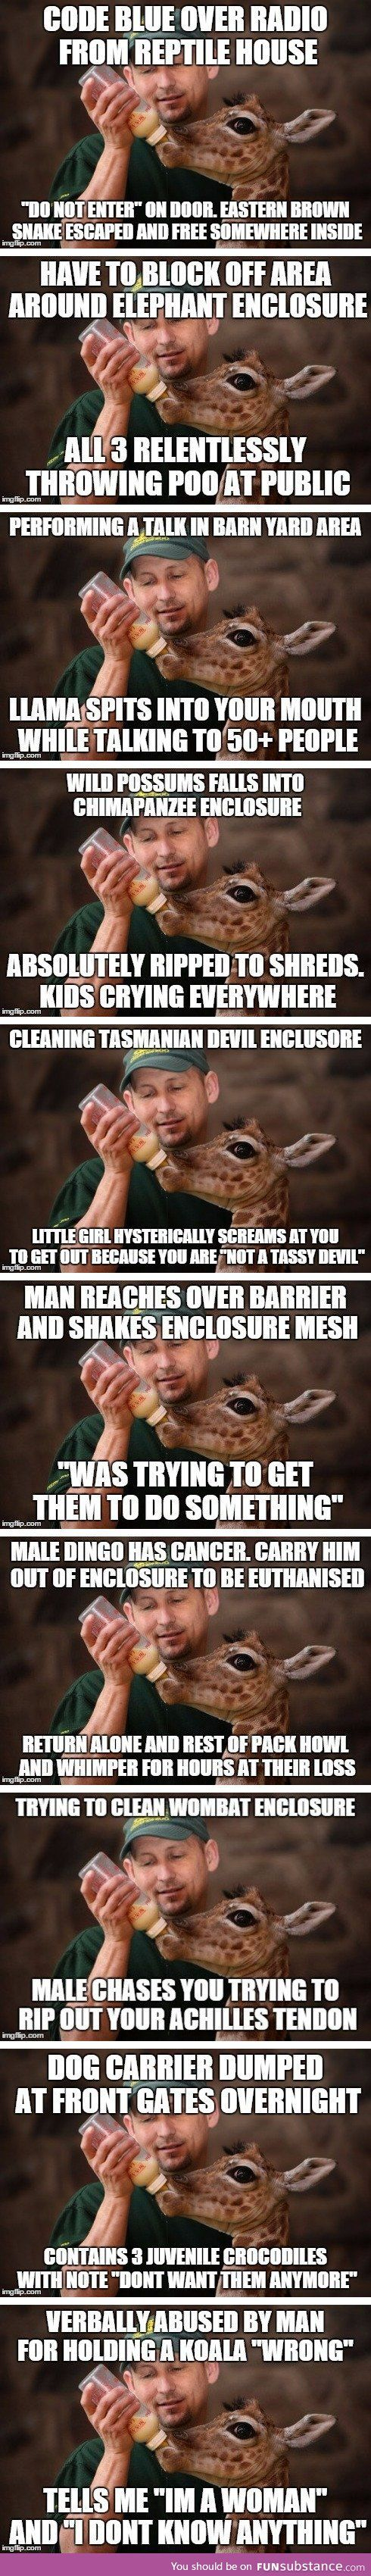 Best Future Zoo Keeper Images On Pinterest Zoo Keeper Dream - 20 hilarious photos of what zookeepers get up to after closing hours